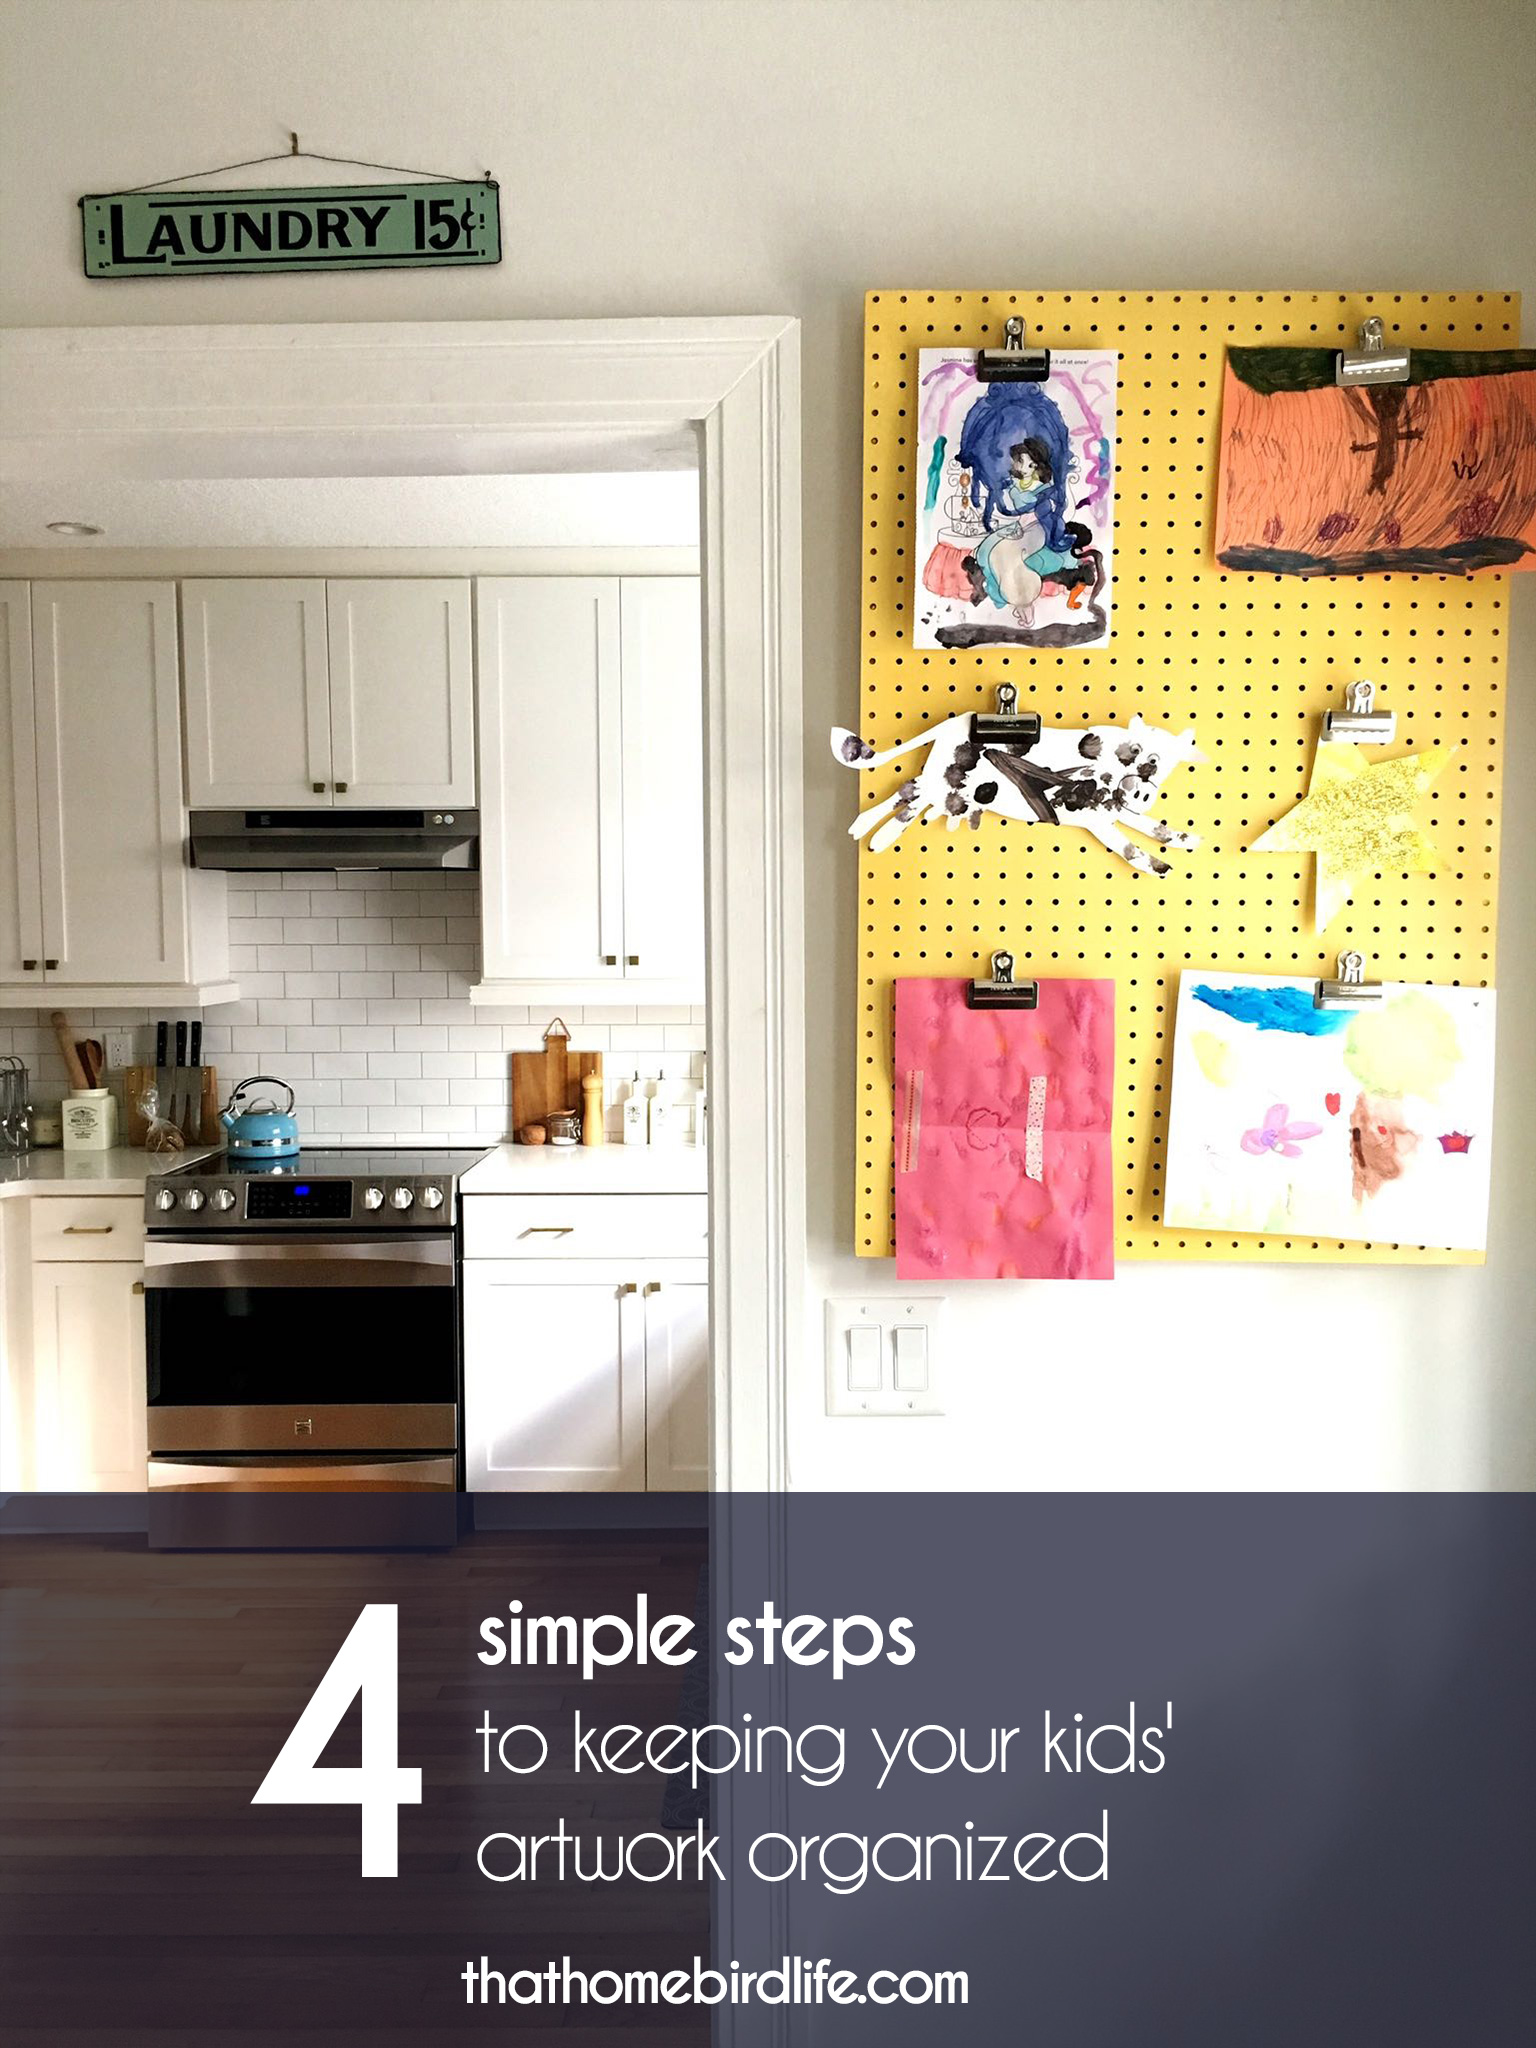 4 simple steps to keeping your kids' artwork organized - That Homebird Life Blog